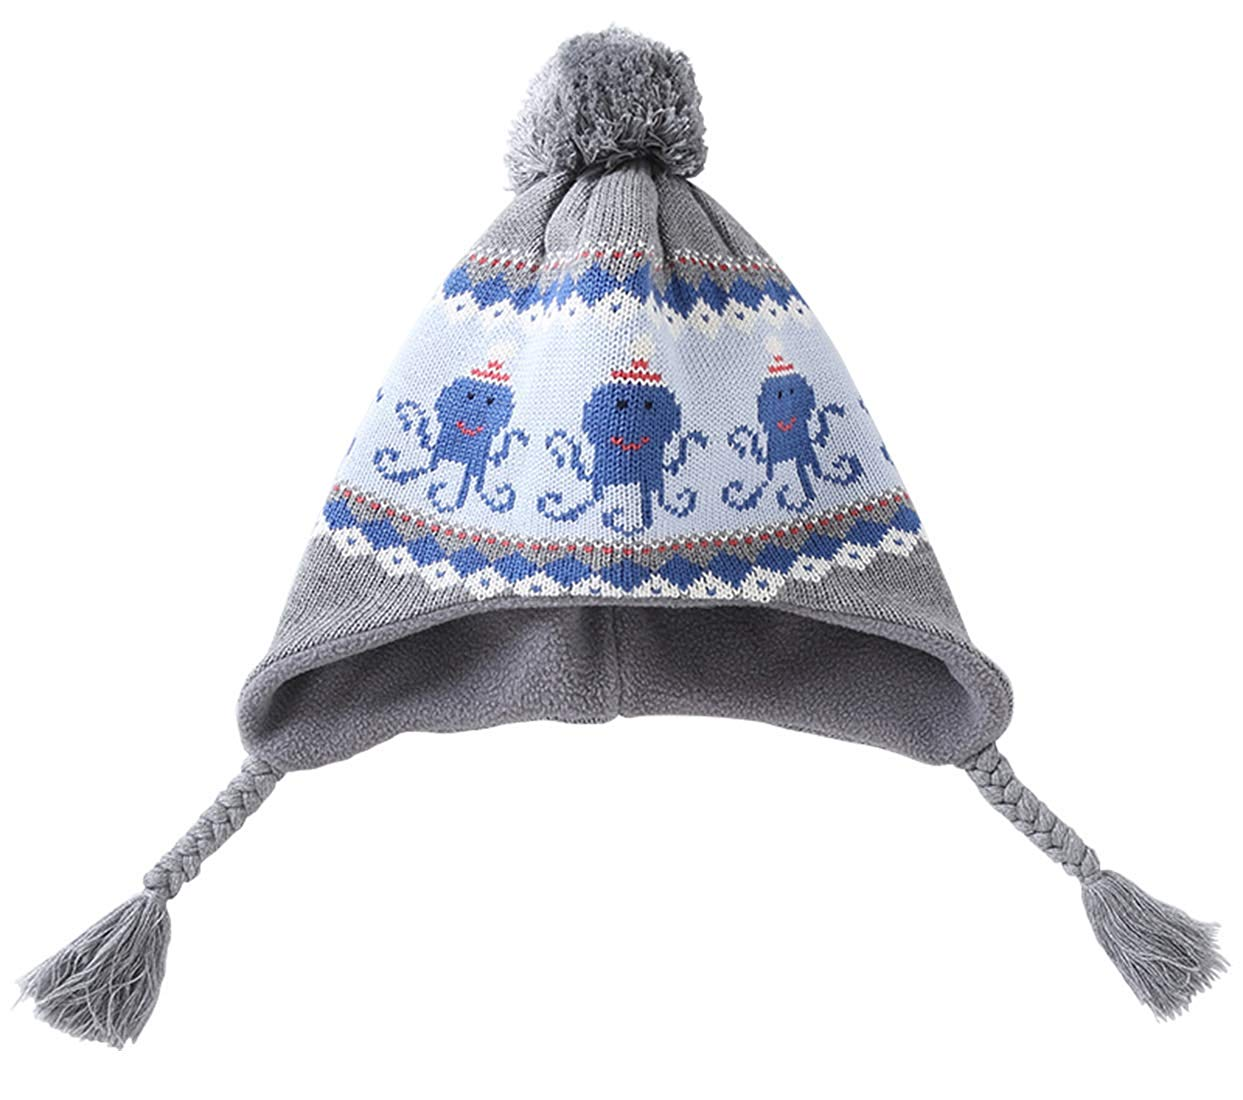 Magracy Baby Toddler Boys Winter Earflap Beanie Kids Cute Knit Hats with Flaps